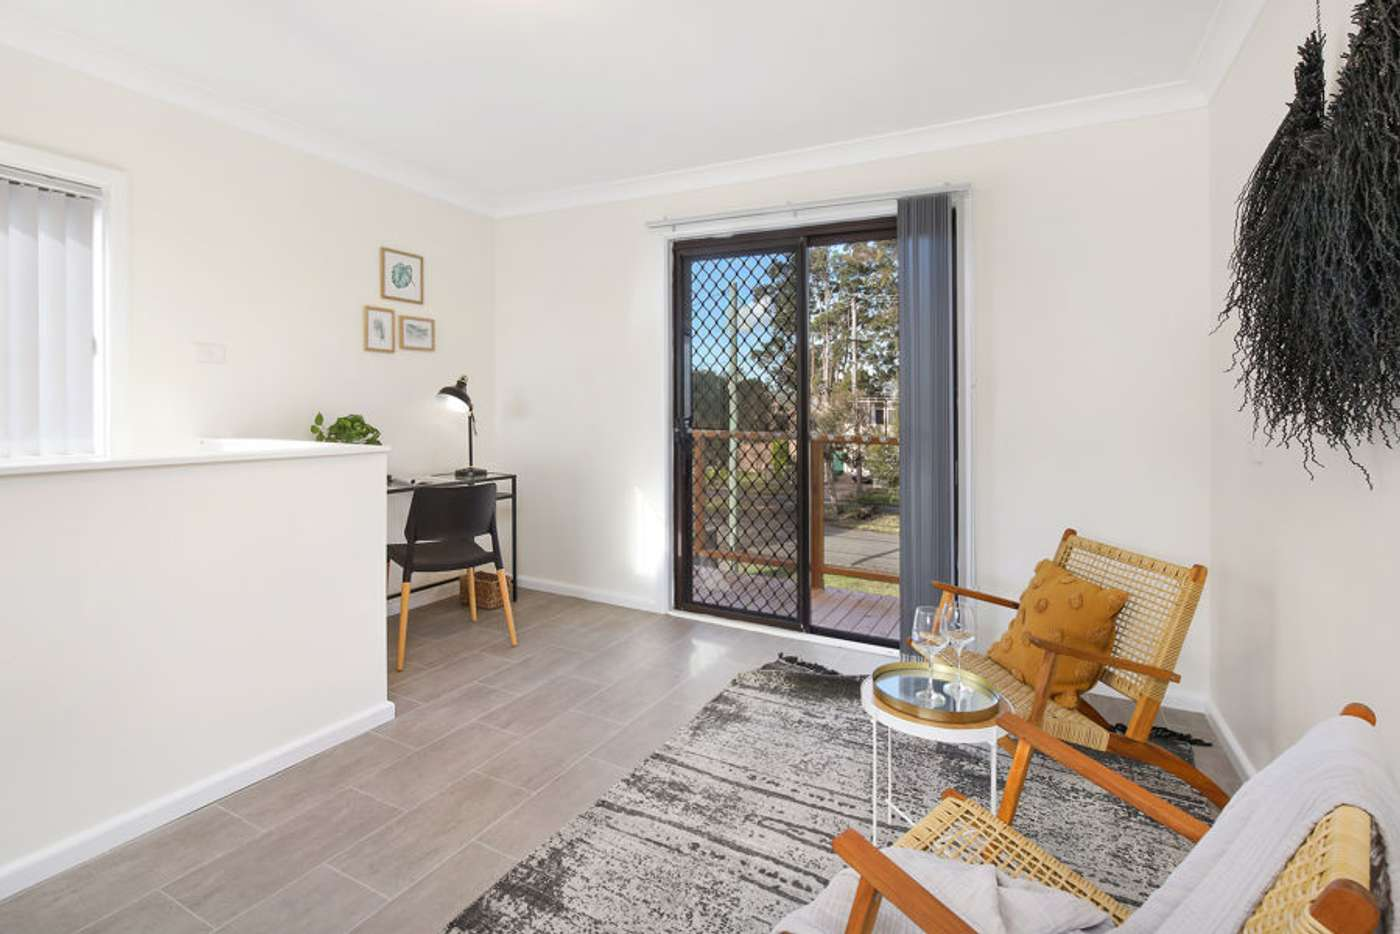 Sixth view of Homely house listing, 97 Cams Boulevard, Summerland Point NSW 2259